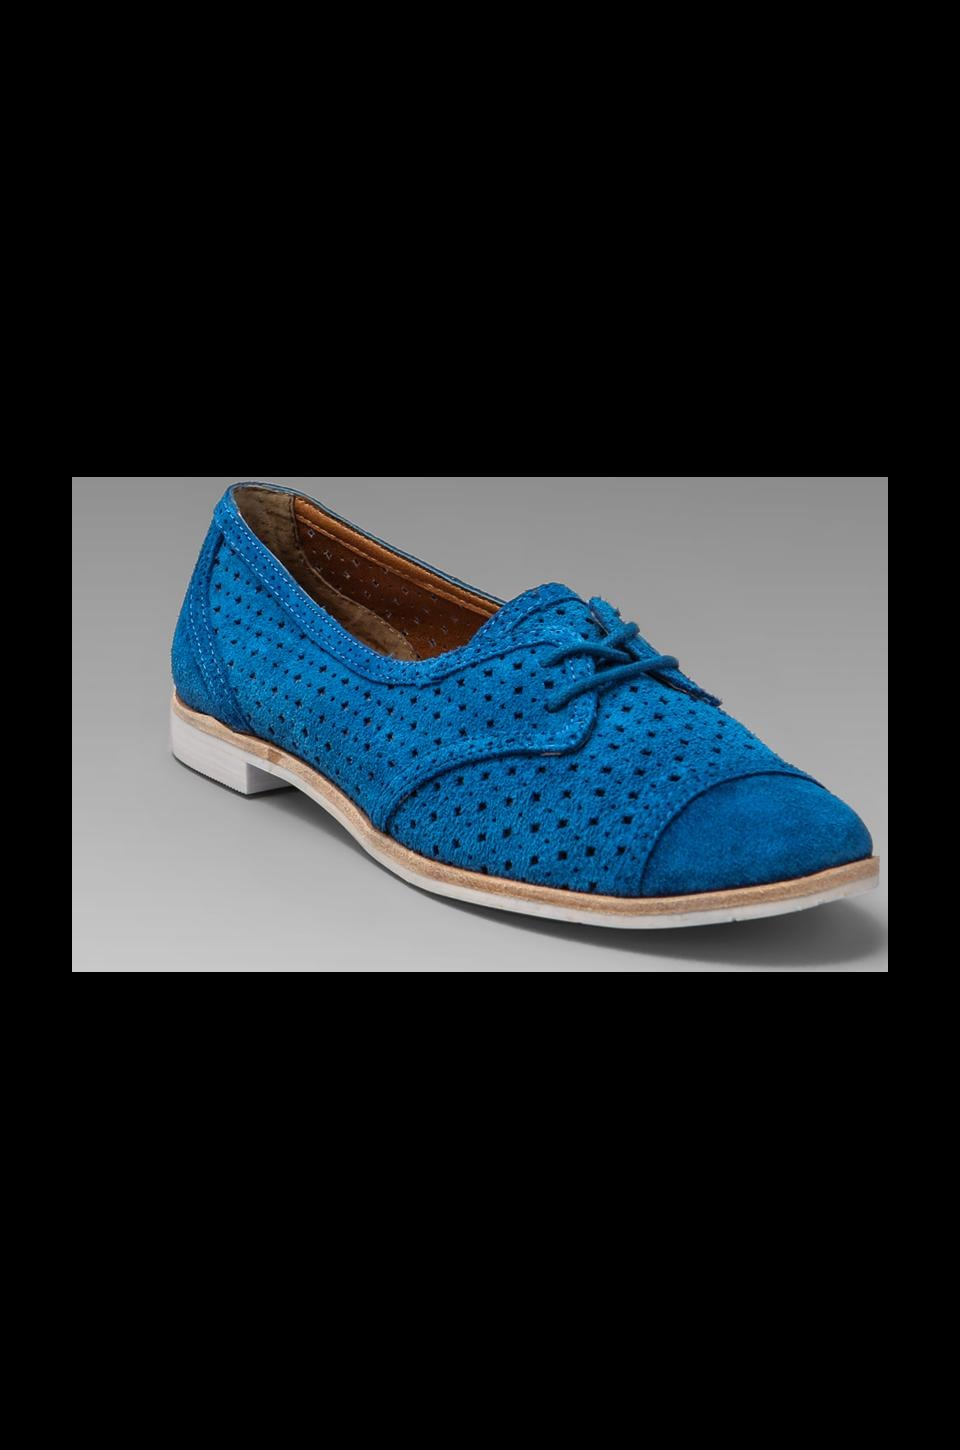 Dolce Vita Marvin Oxford in Blue